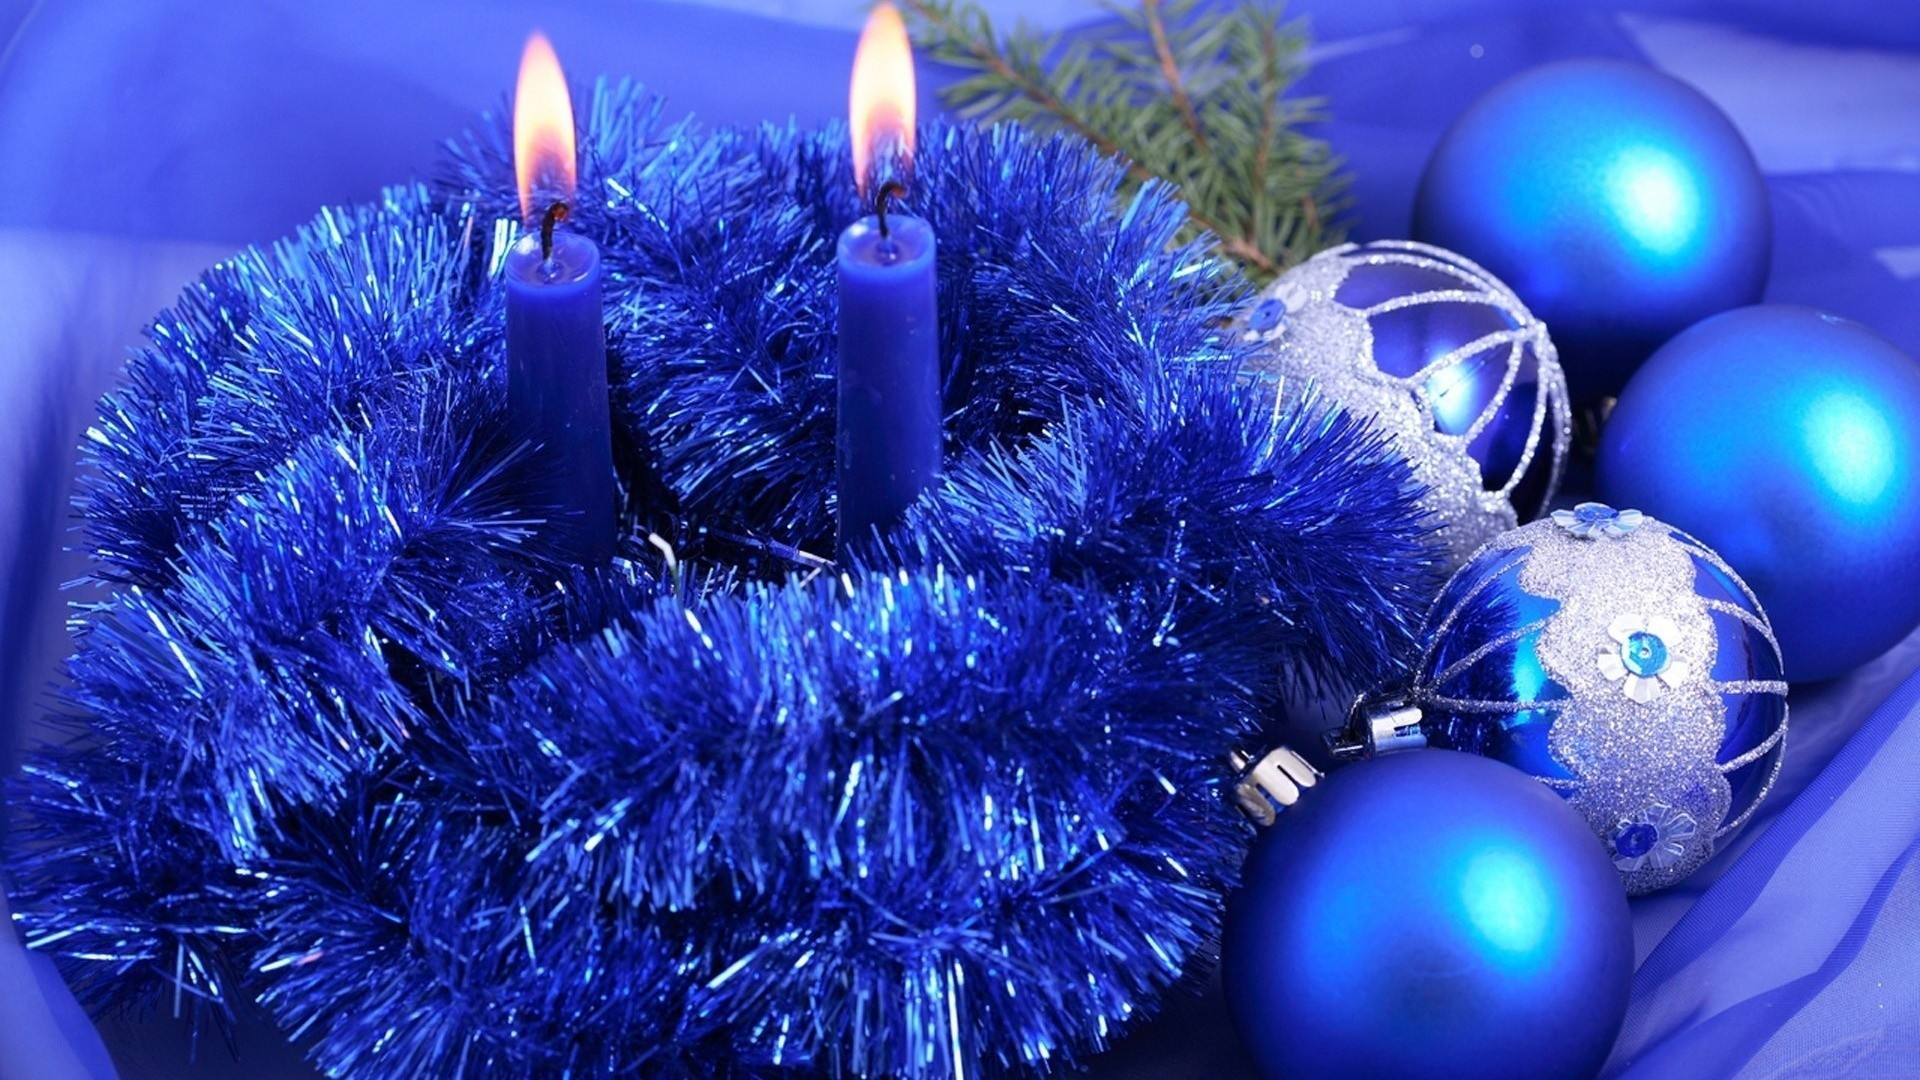 1920x1080 Blue Christmas Candle And Balls Decoration photos of Free Christmas  Wallpapers